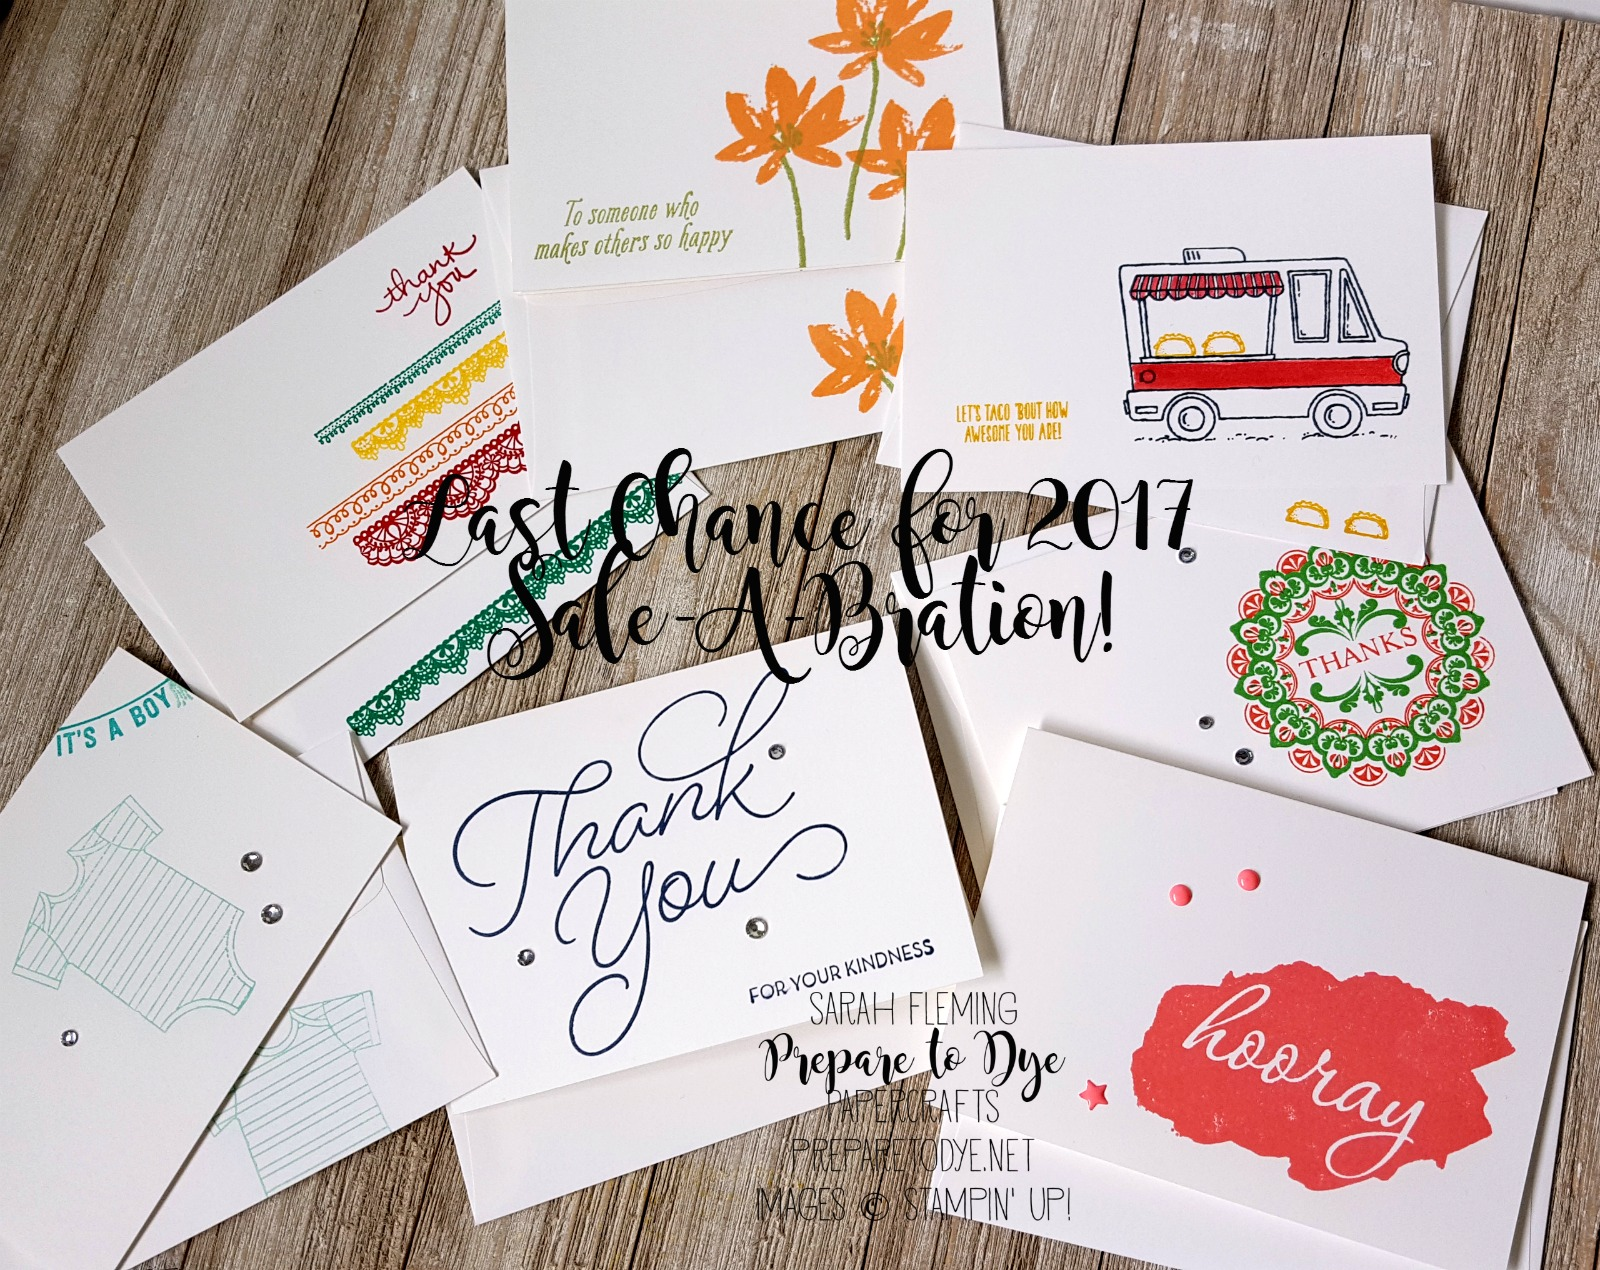 Last chance for Stampin' Up!'s Sale-A-Bration 2017! It ends Friday 3/31/17. Notecards & Envelopes with 8 different Sale-A-Bration stamp sets. Tasty Trucks, Make a Medallion, Hey Chick, Reverse Words, So Very Much, Avant Garden, Delicate Details, Any Occasion - Sarah Fleming - Prepare to Dye Papercrafts